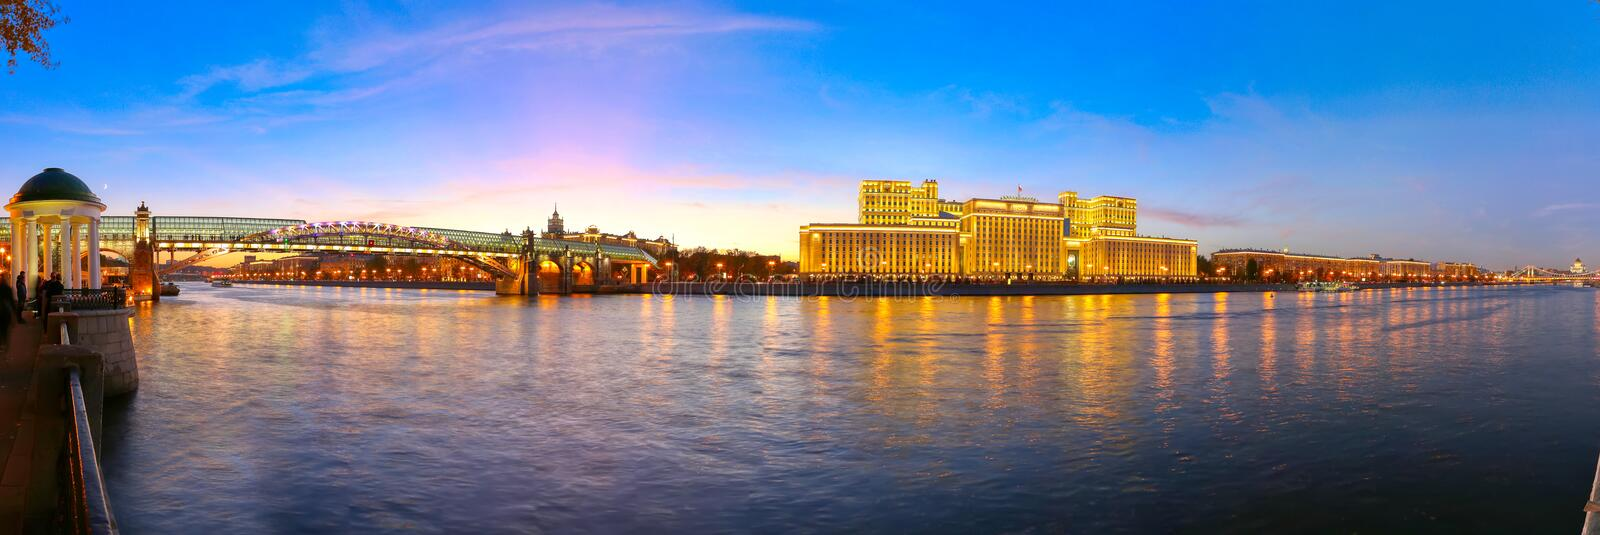 Main Building of the Ministry of Defence of the Russian Federation Minoboron and Moskva River panorama. Moscow, Russia royalty free stock image